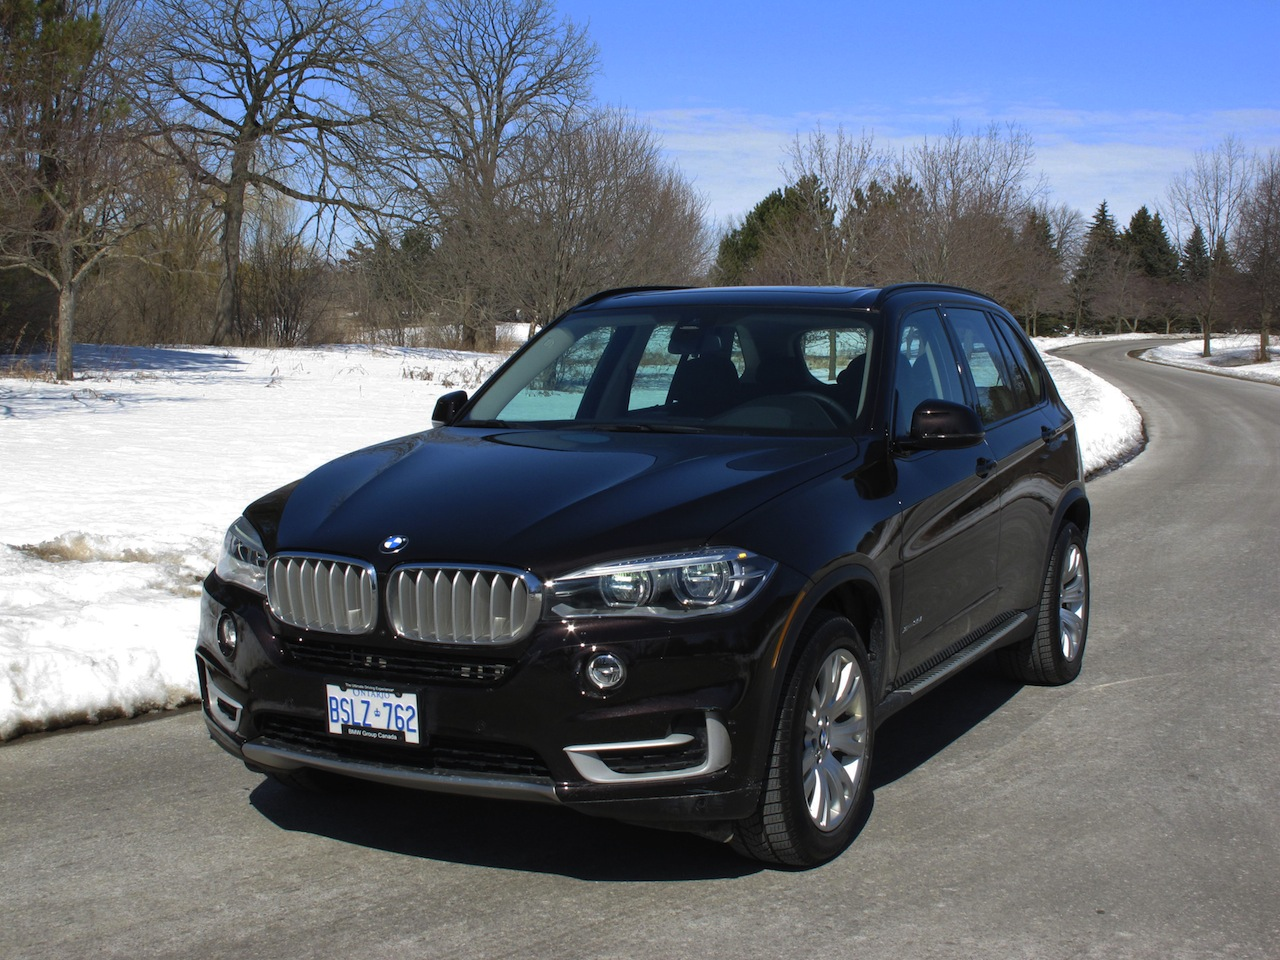 2014 bmw x5 xdrive35i photo gallery cars photos test drives and reviews canadian auto review. Black Bedroom Furniture Sets. Home Design Ideas